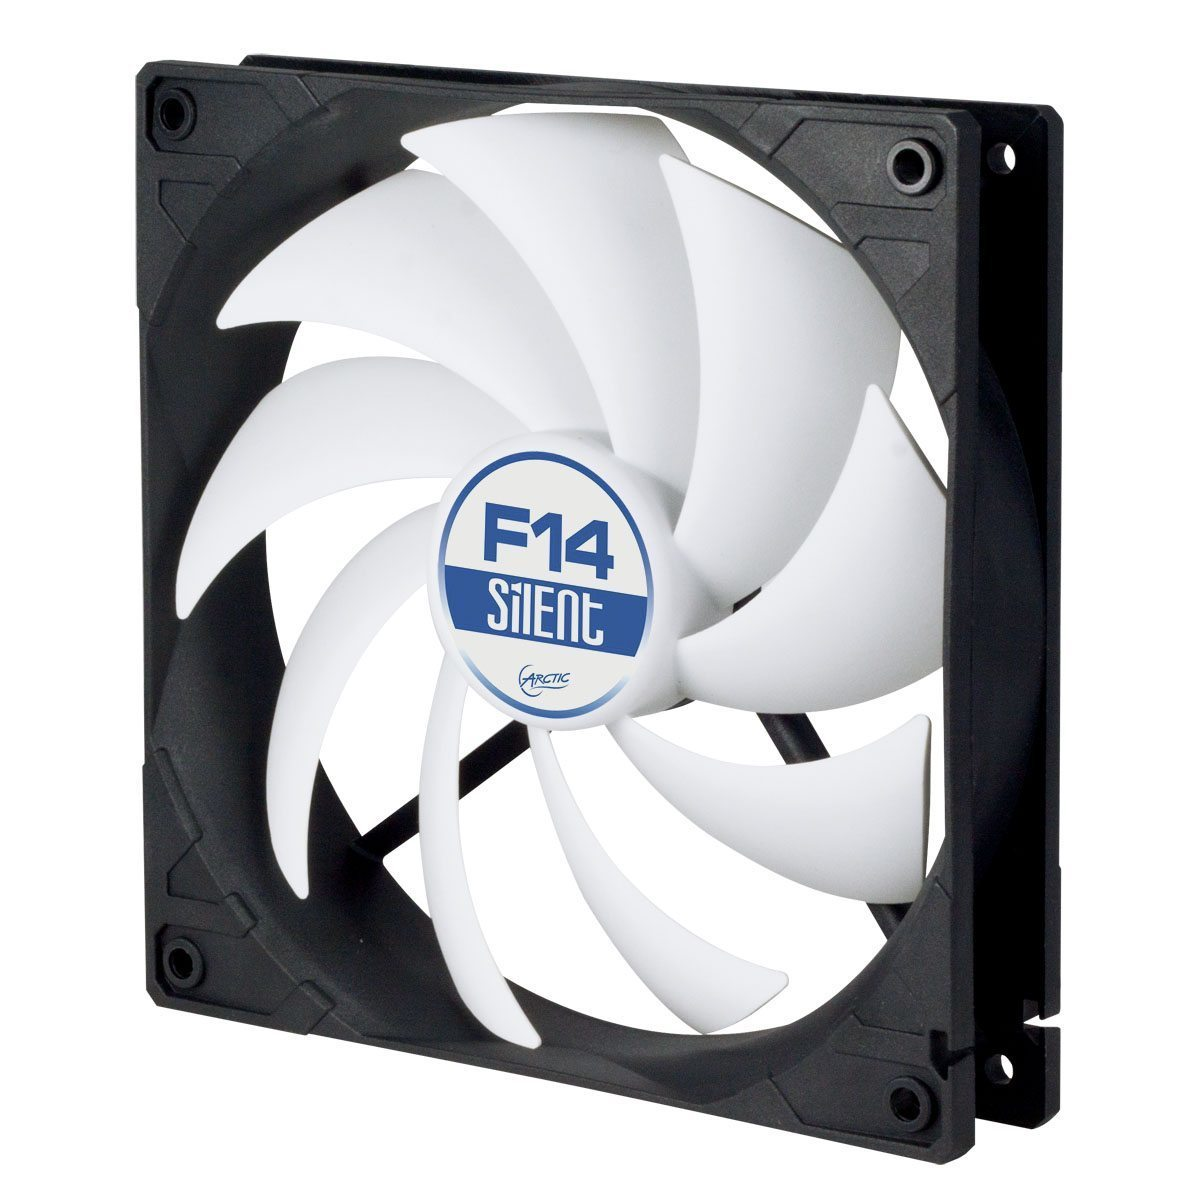 Arctic Fan F14 Silent - 140mm/800prm